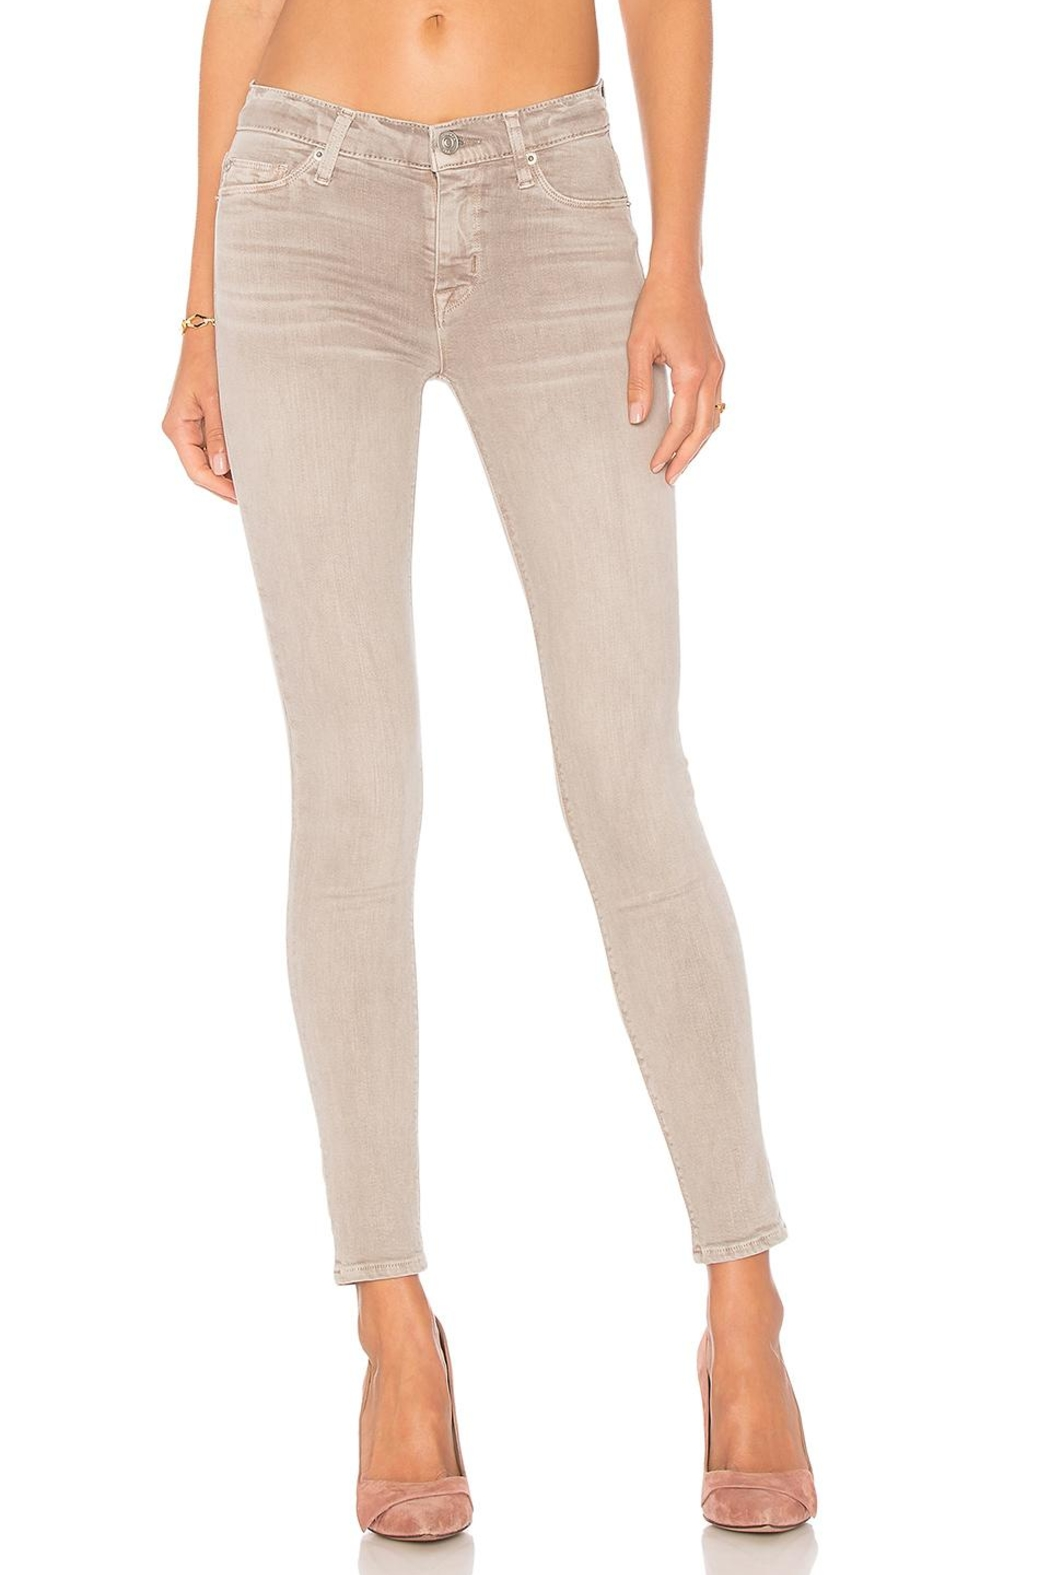 Hudson Jeans Nico Ankle Super-Skinny - Main Image